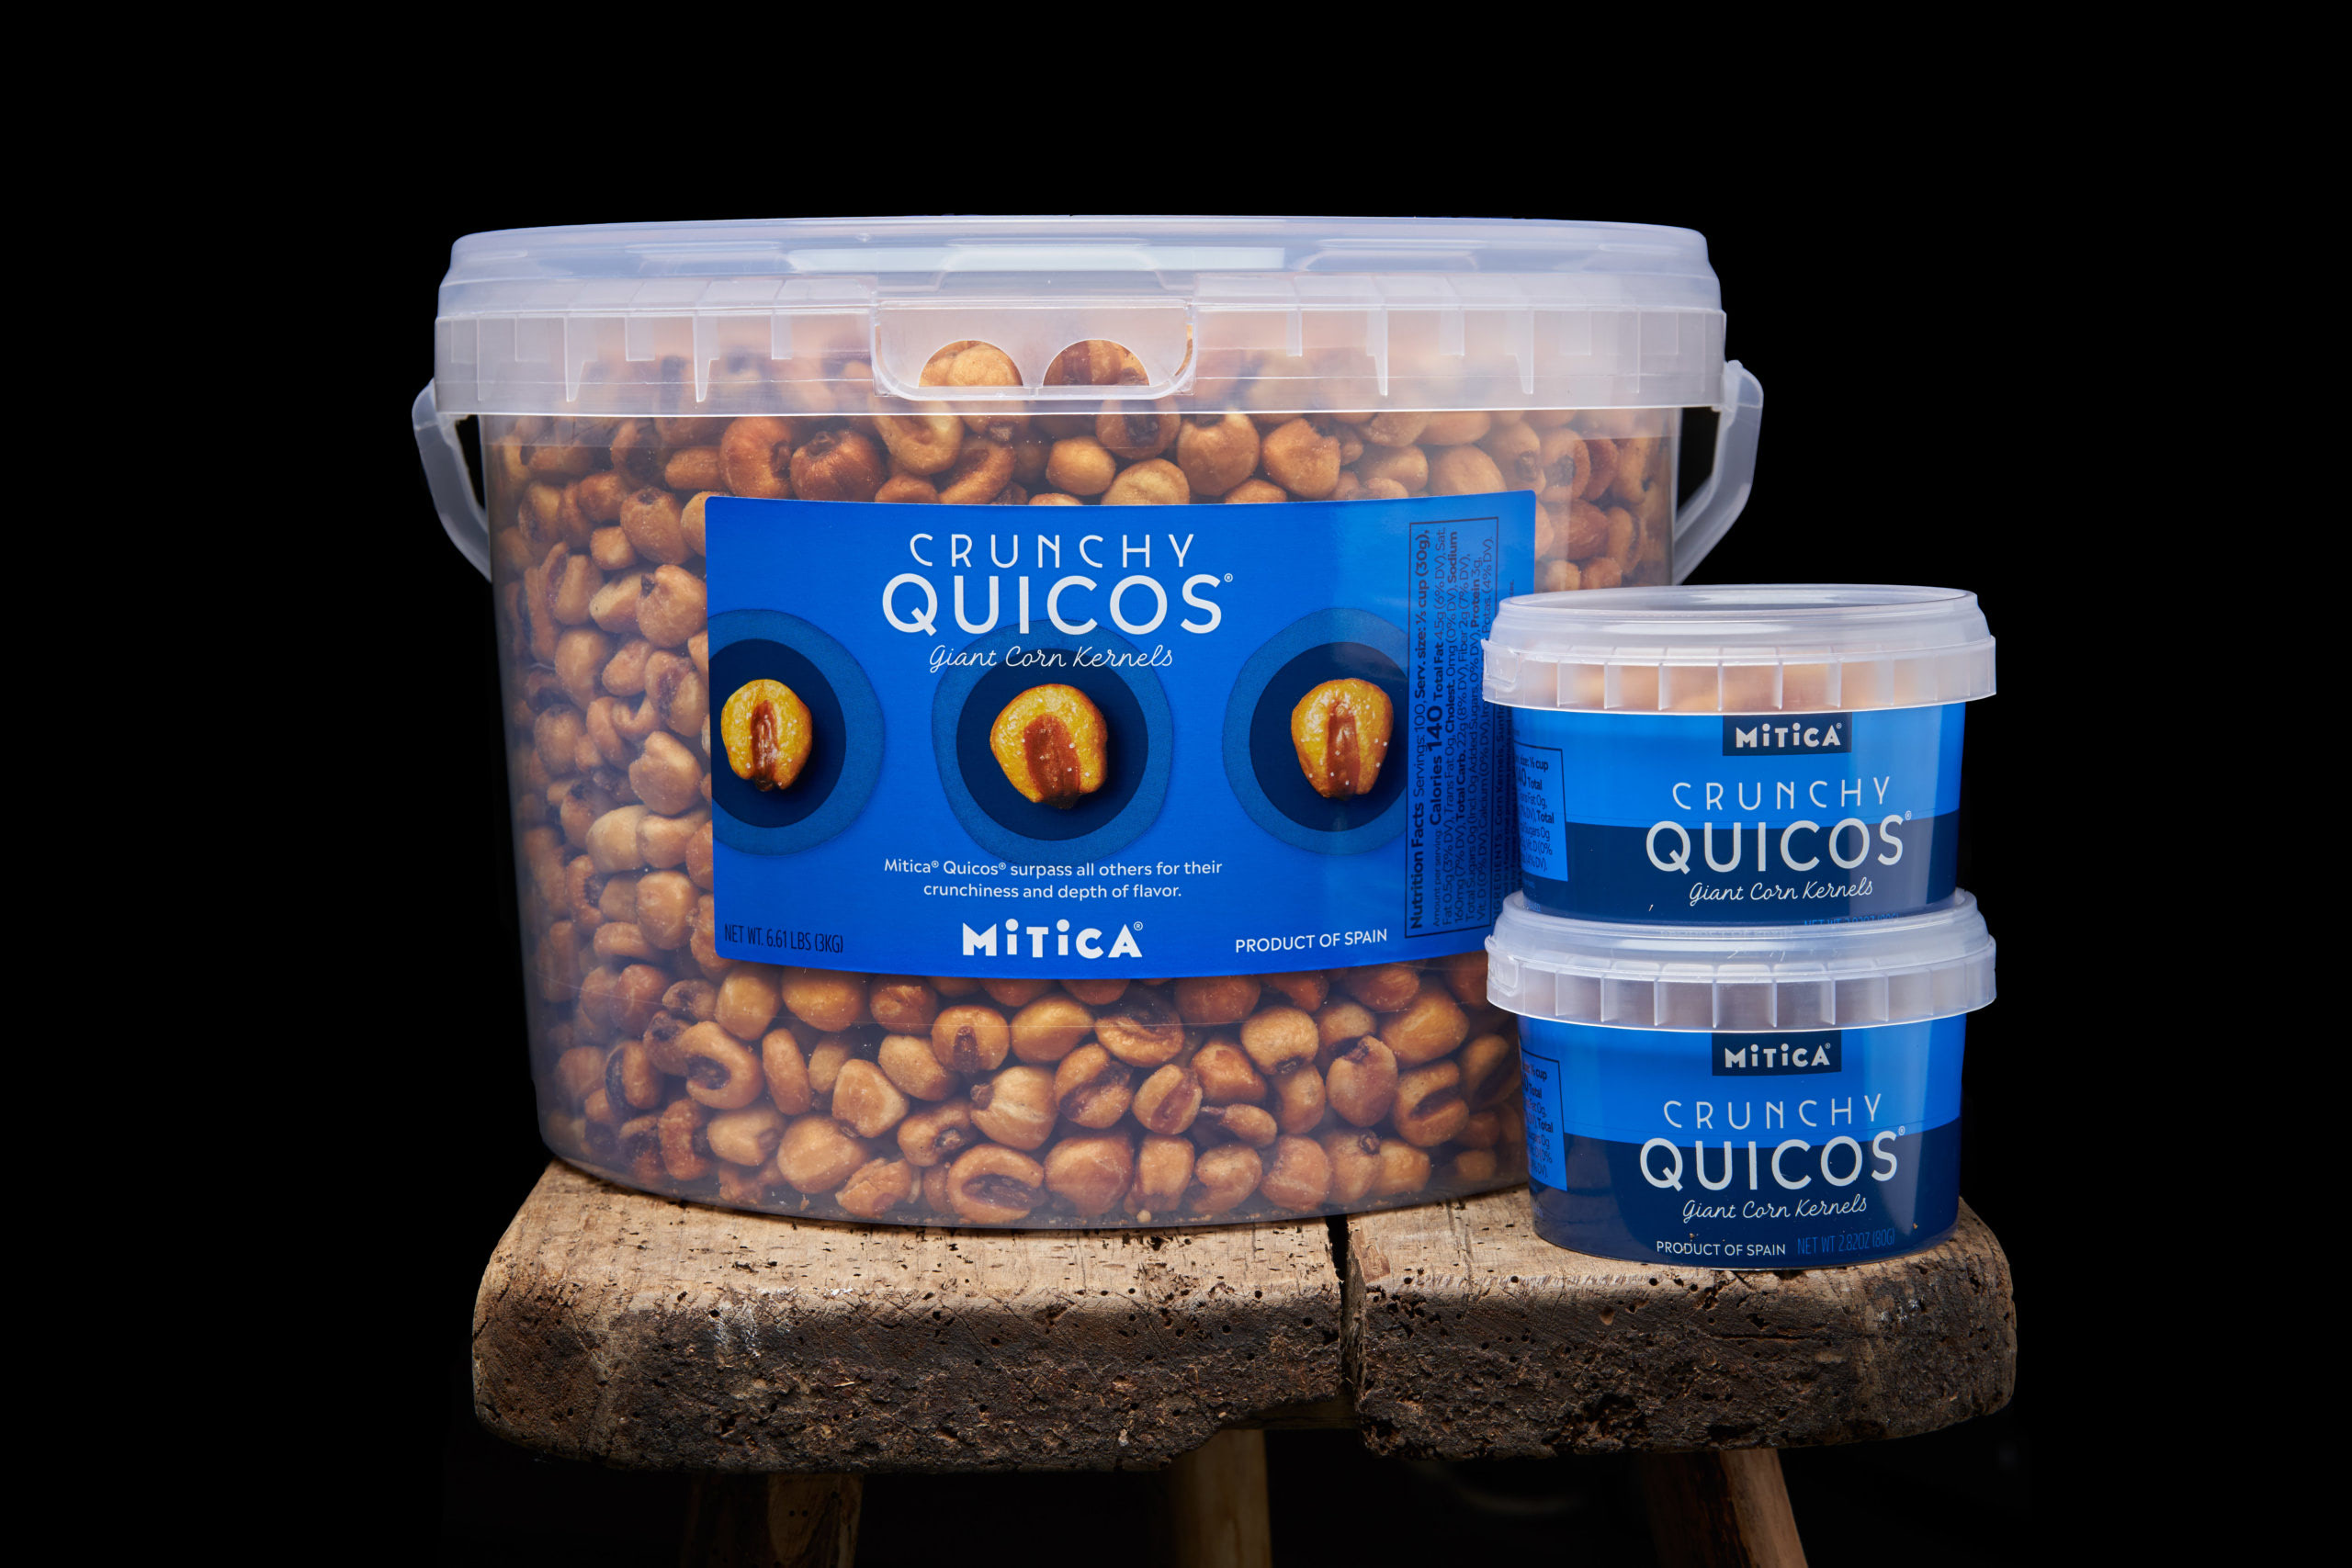 MITICA QUICOS(Kee-koes) SALTED CORN NUTS(Quicos: Giant Crunchy Corn) 6.6 LB Tub